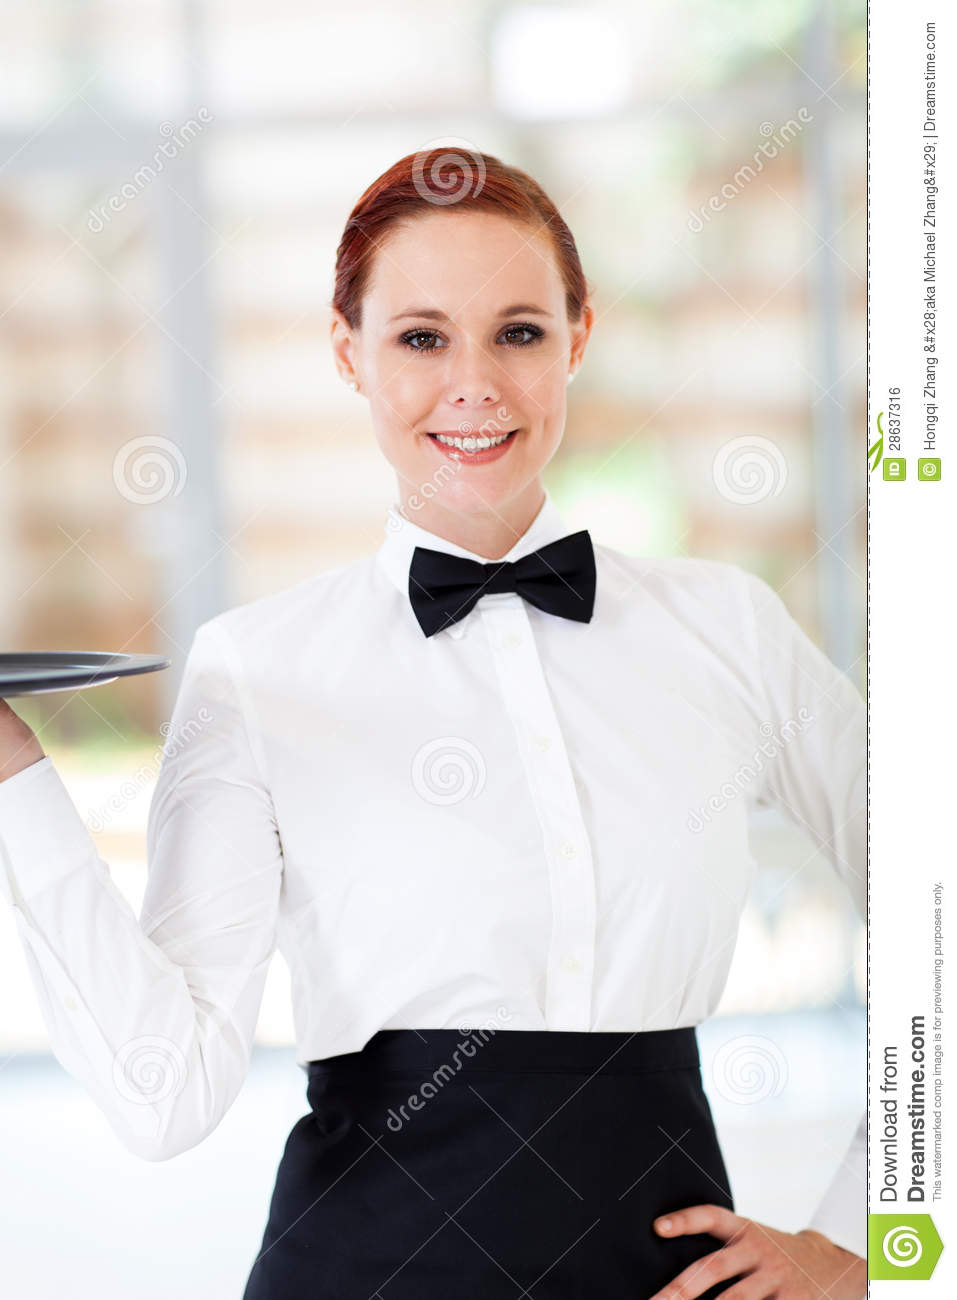 Beautiful Waitress Royalty Free Stock Image - Image: 28637316